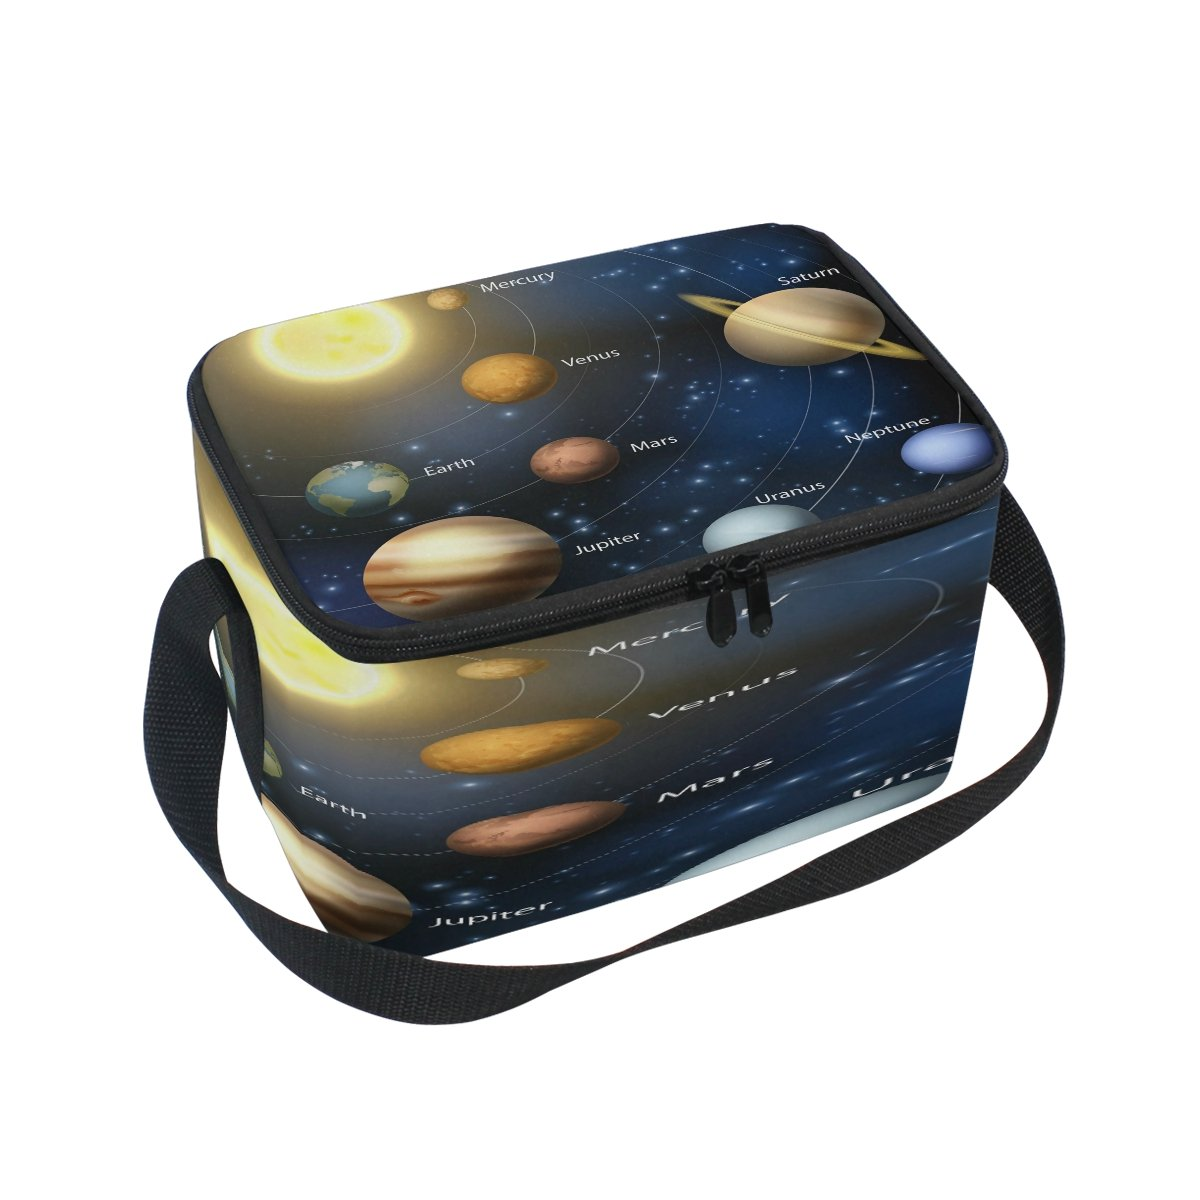 Use4 Solar System Planet Outer Space Insulated Lunch Bag Tote Bag Cooler Lunchbox for Picnic School Women Men Kids